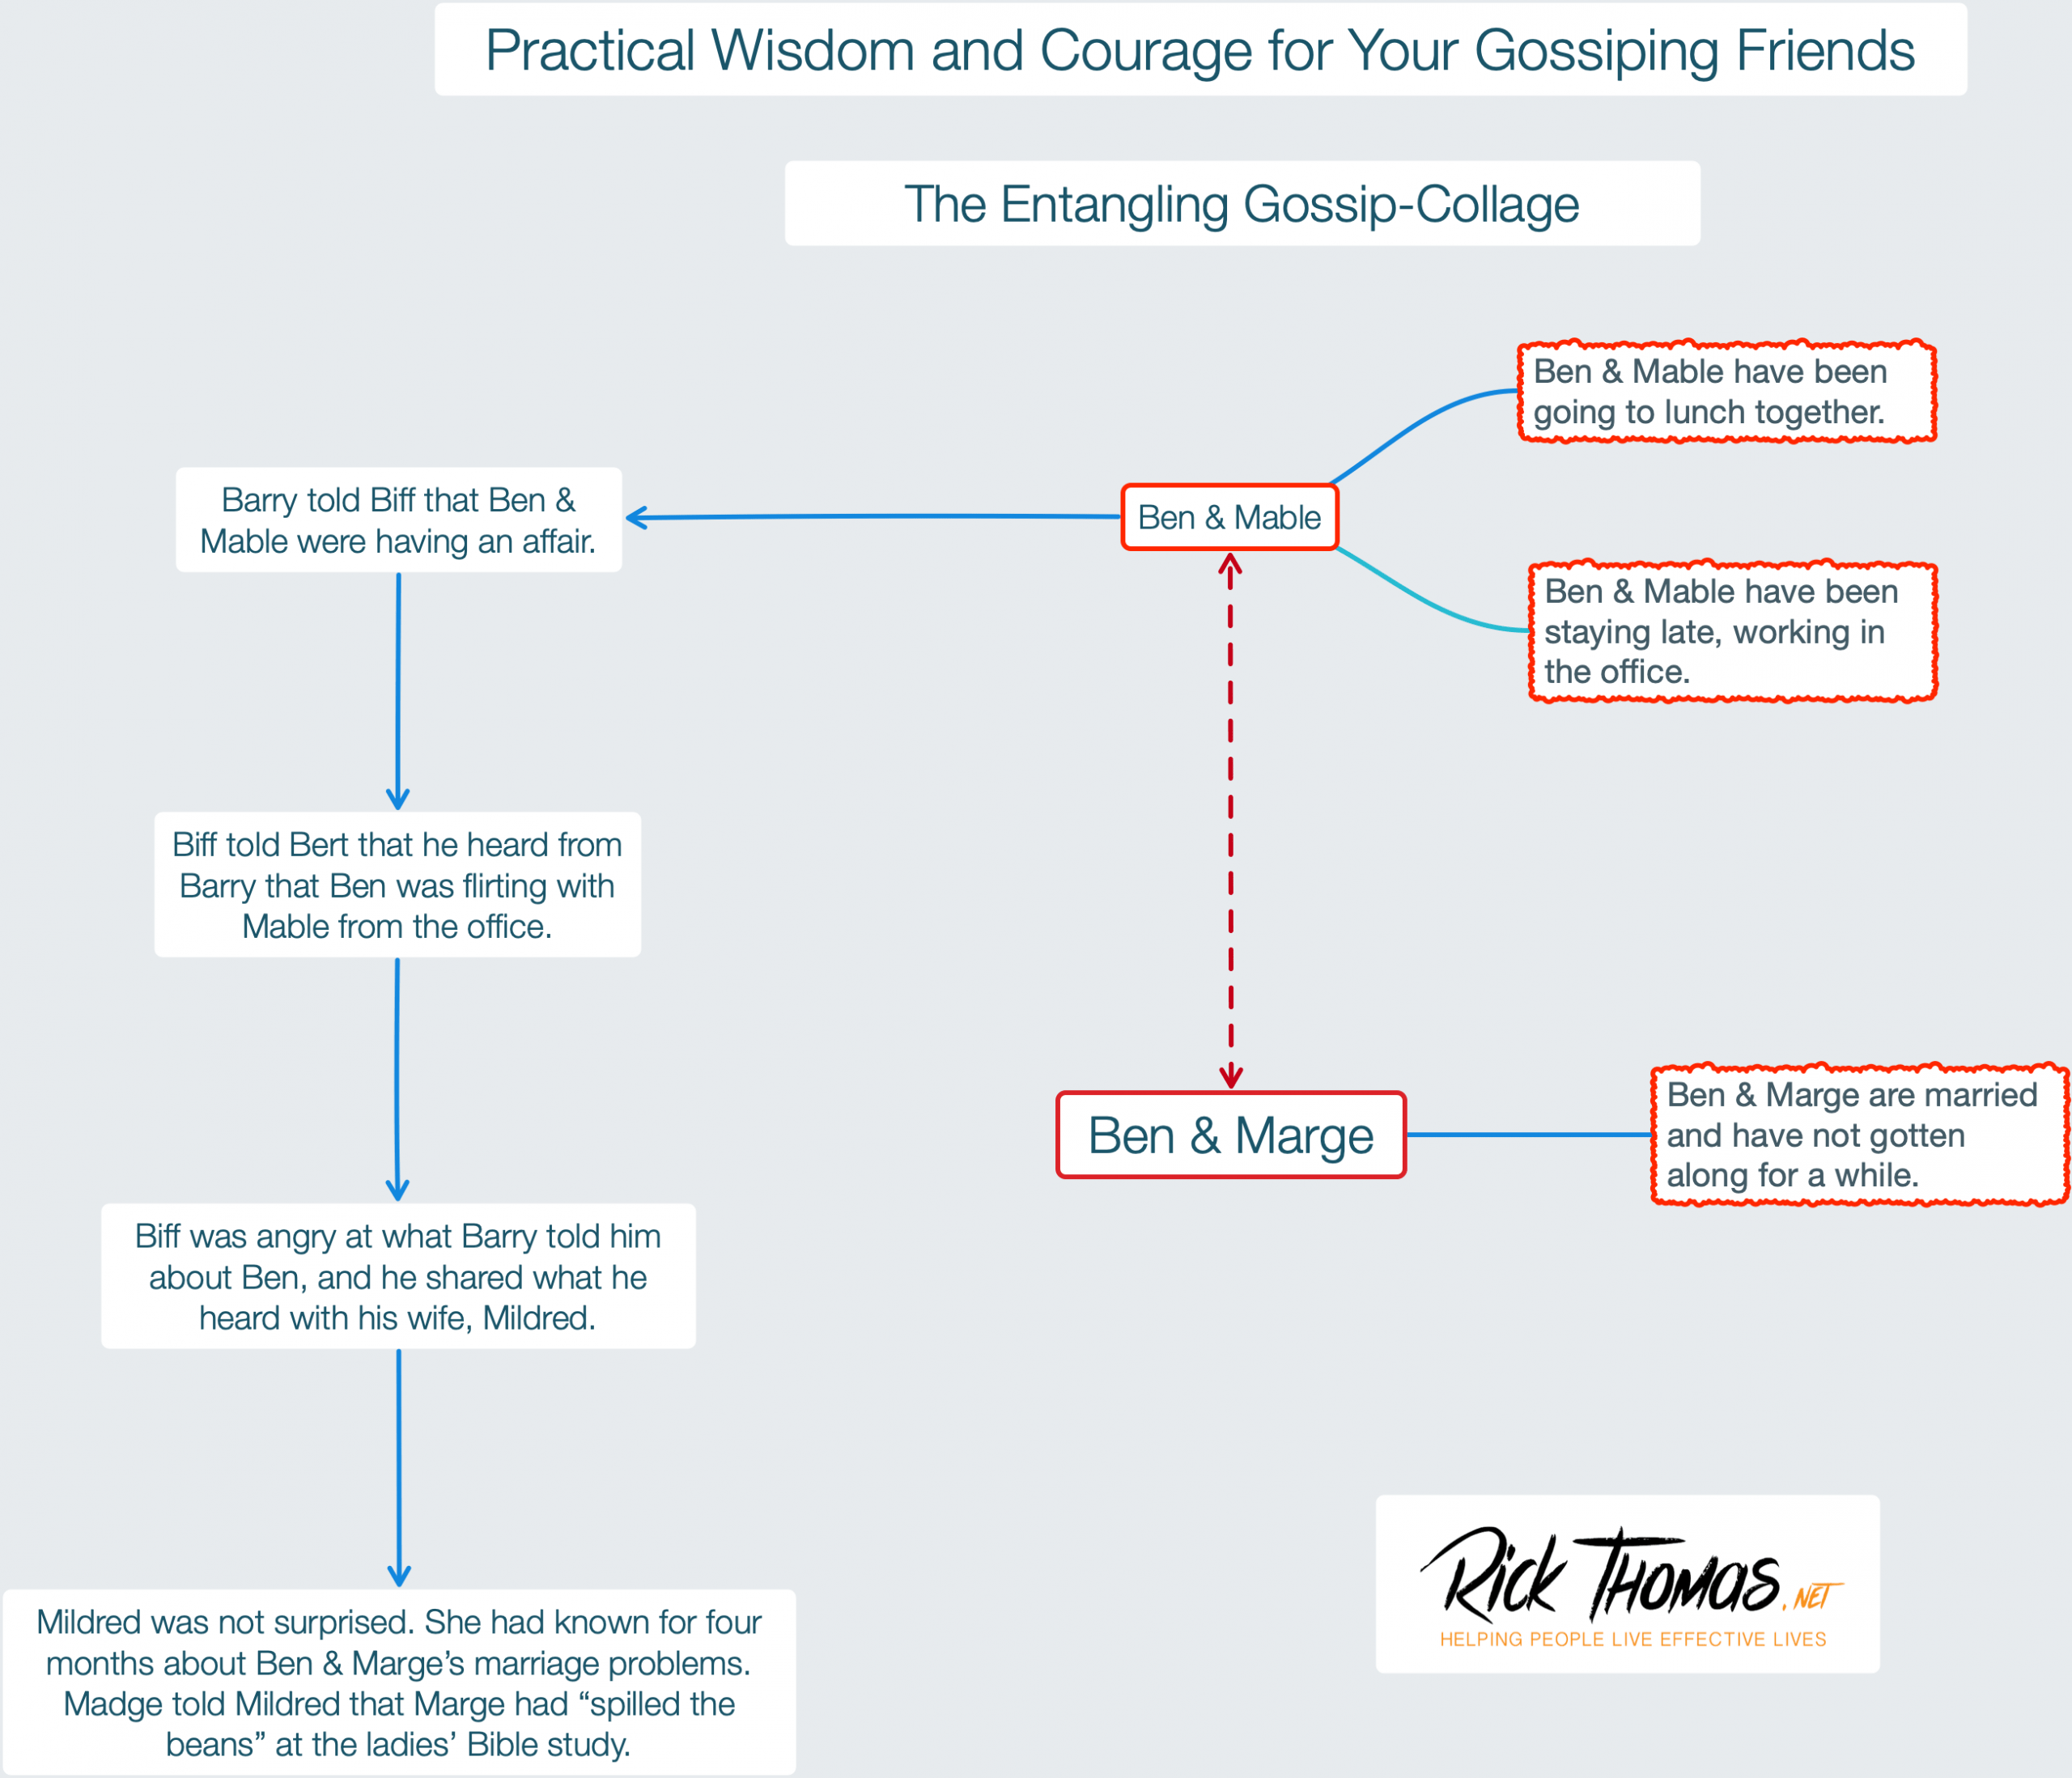 Practical Wisdom and Courage for Your Gossiping Friends